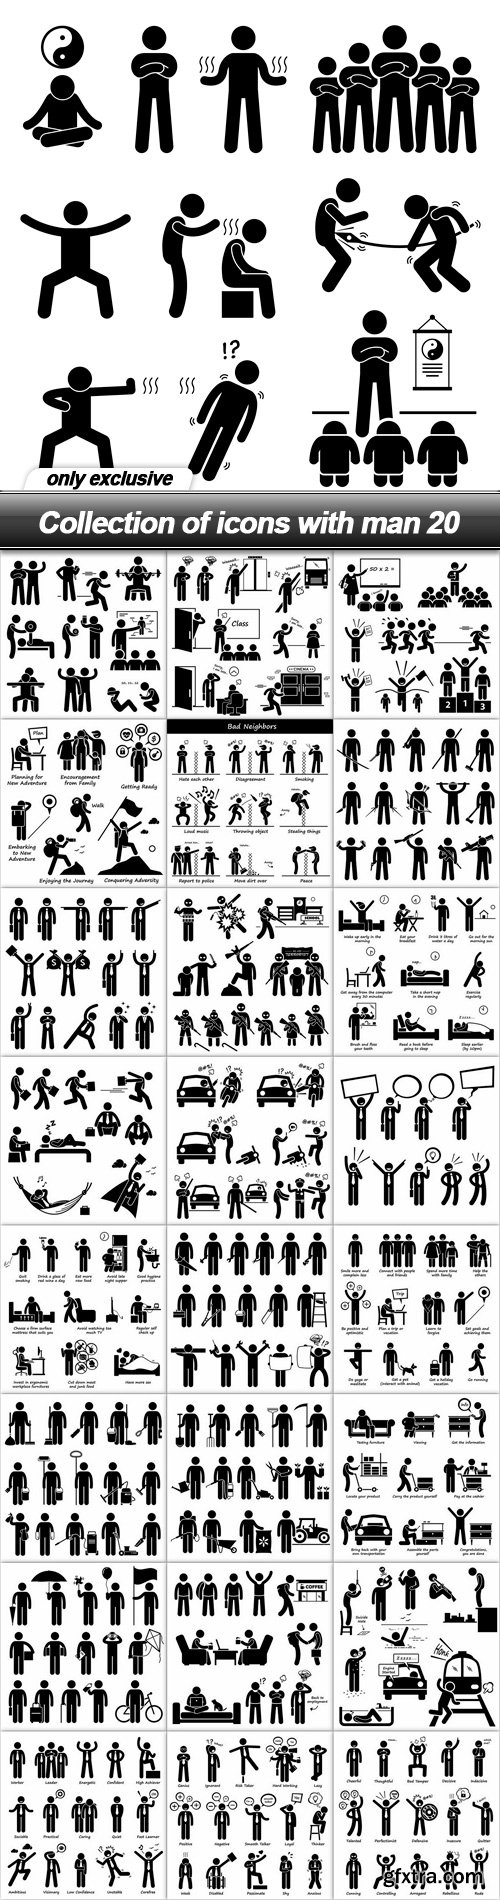 Collection of icons with man 20 - 25 EPS